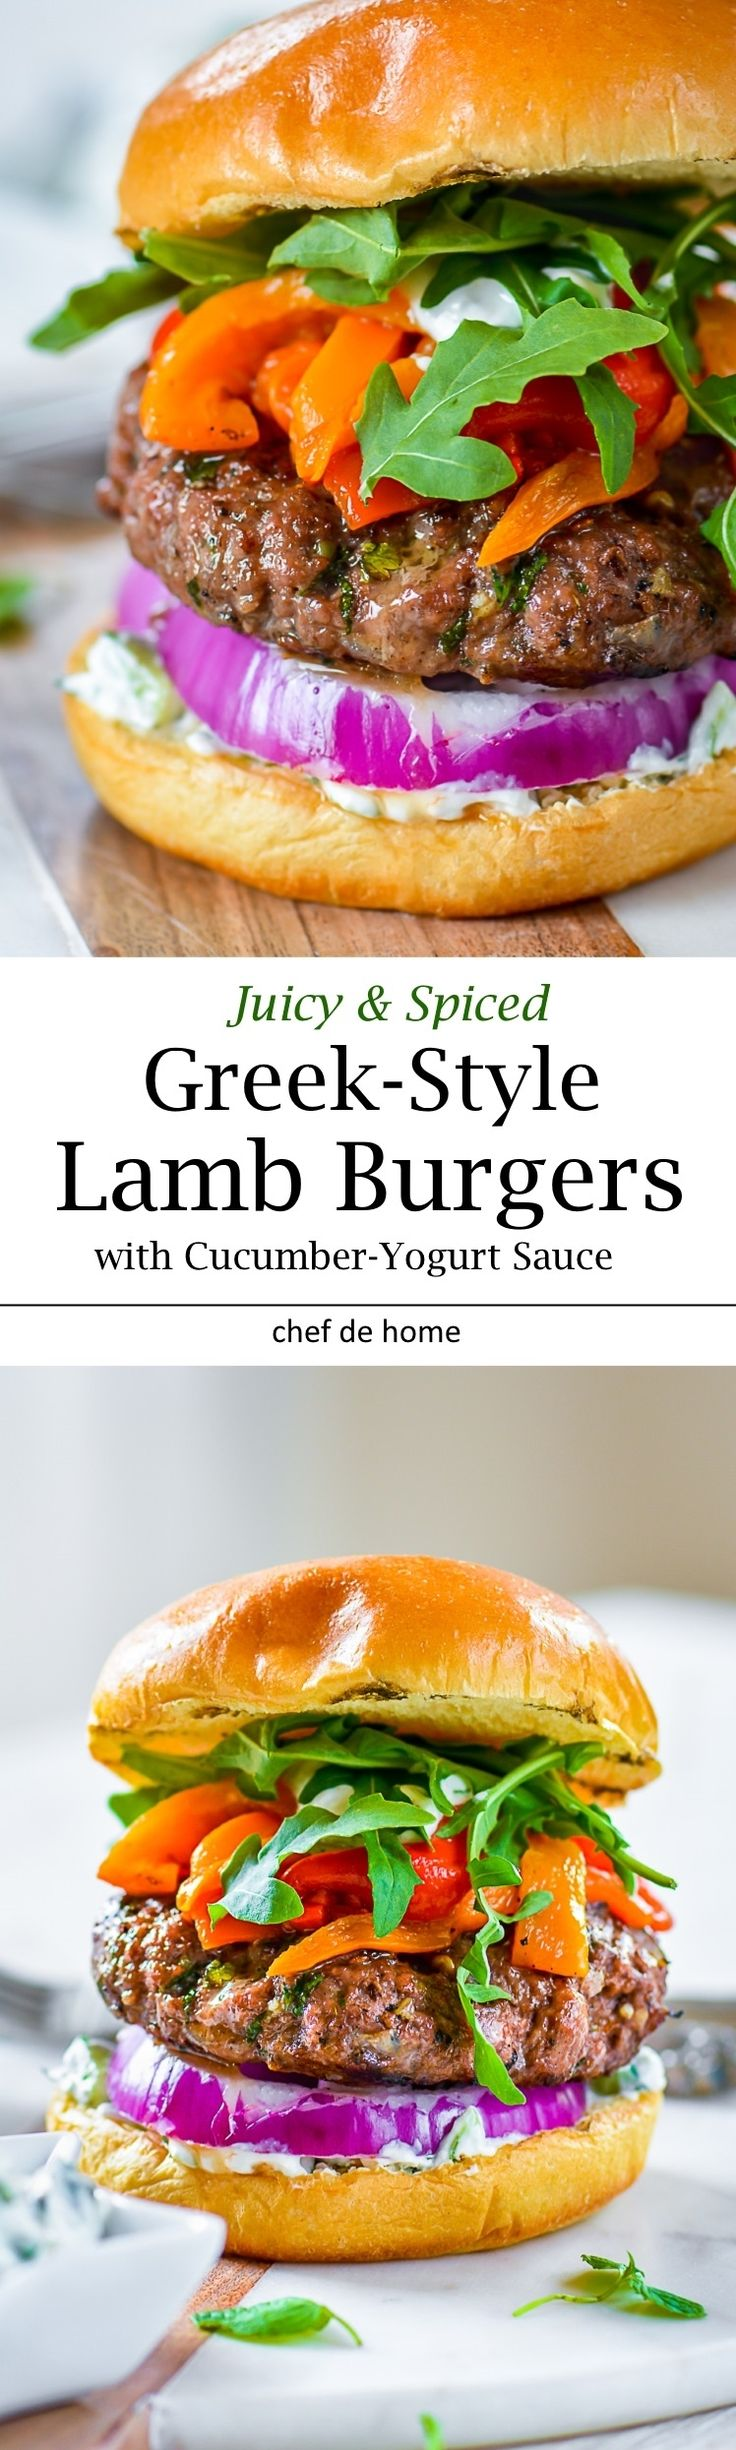 ... Lamb Burgers on Pinterest | Lamb sliders, Burger meat and Grilled lamb